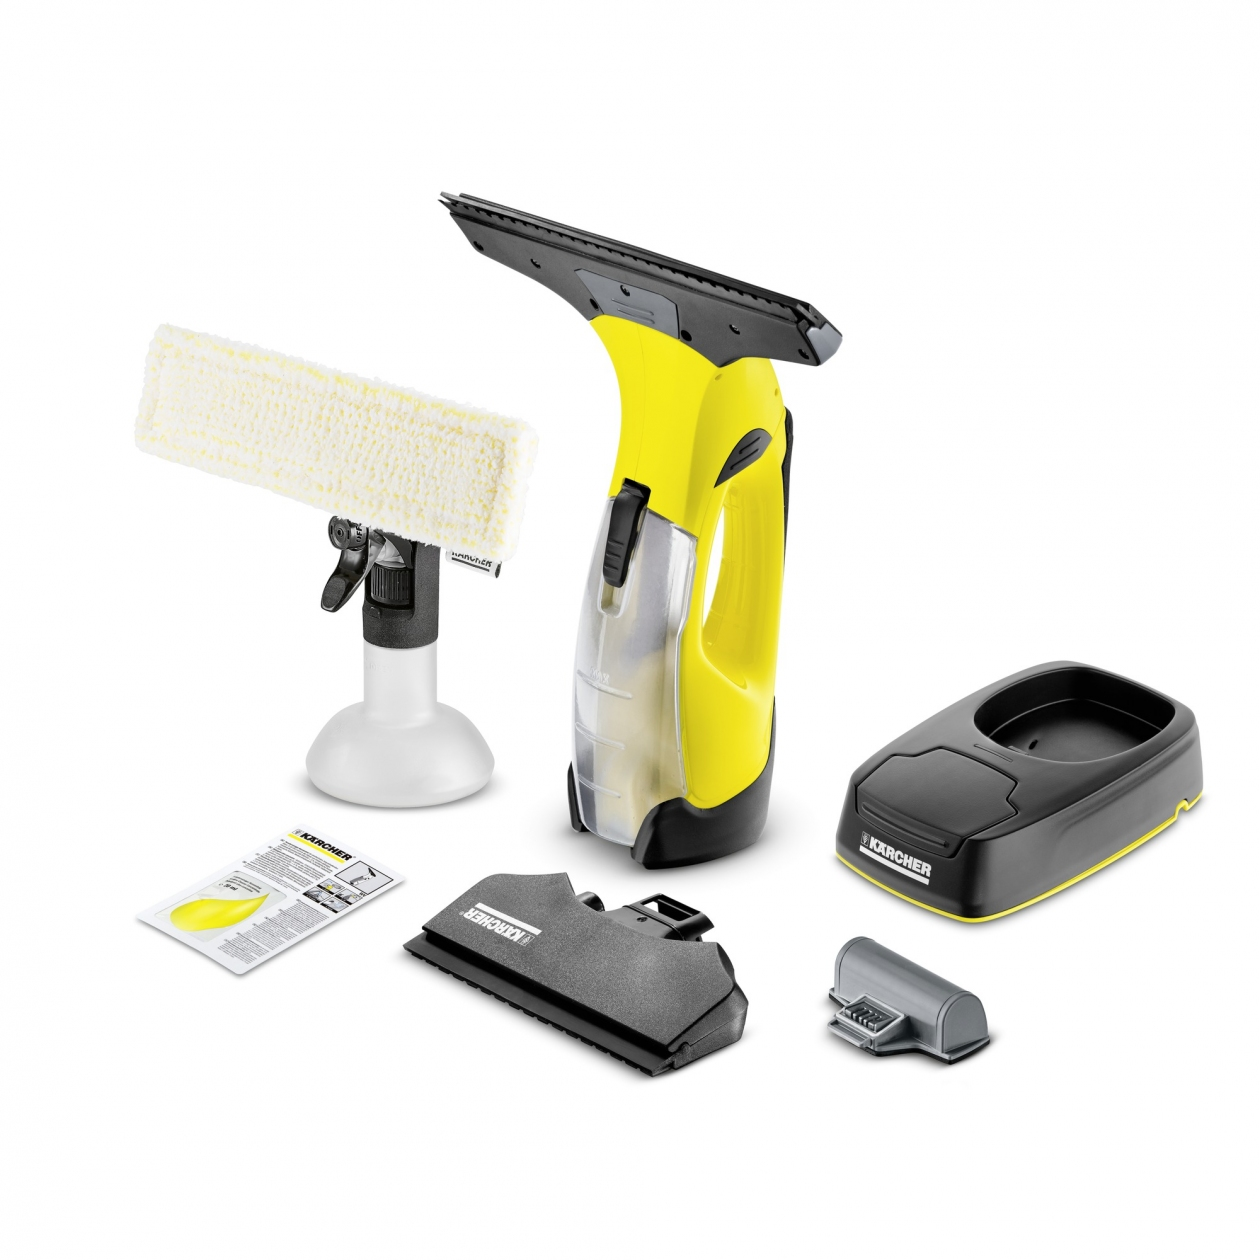 KARCHER Kärcher WV 5 Plus Non Stop Cleaning Kit 1.633-443.0 aku stěrka na okna